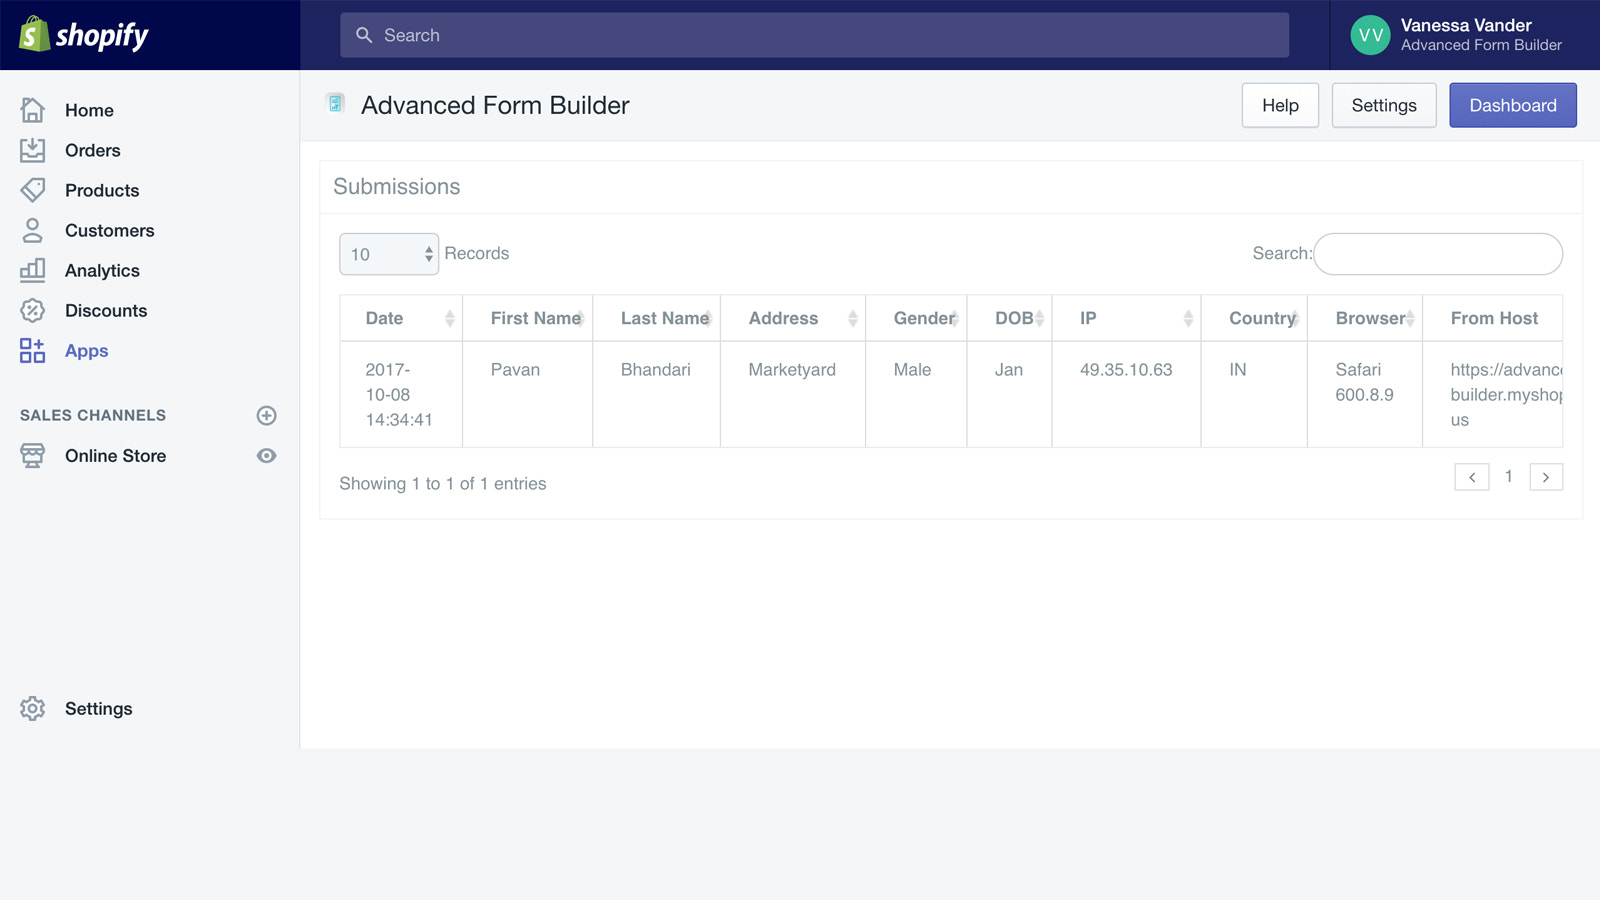 Form Data View